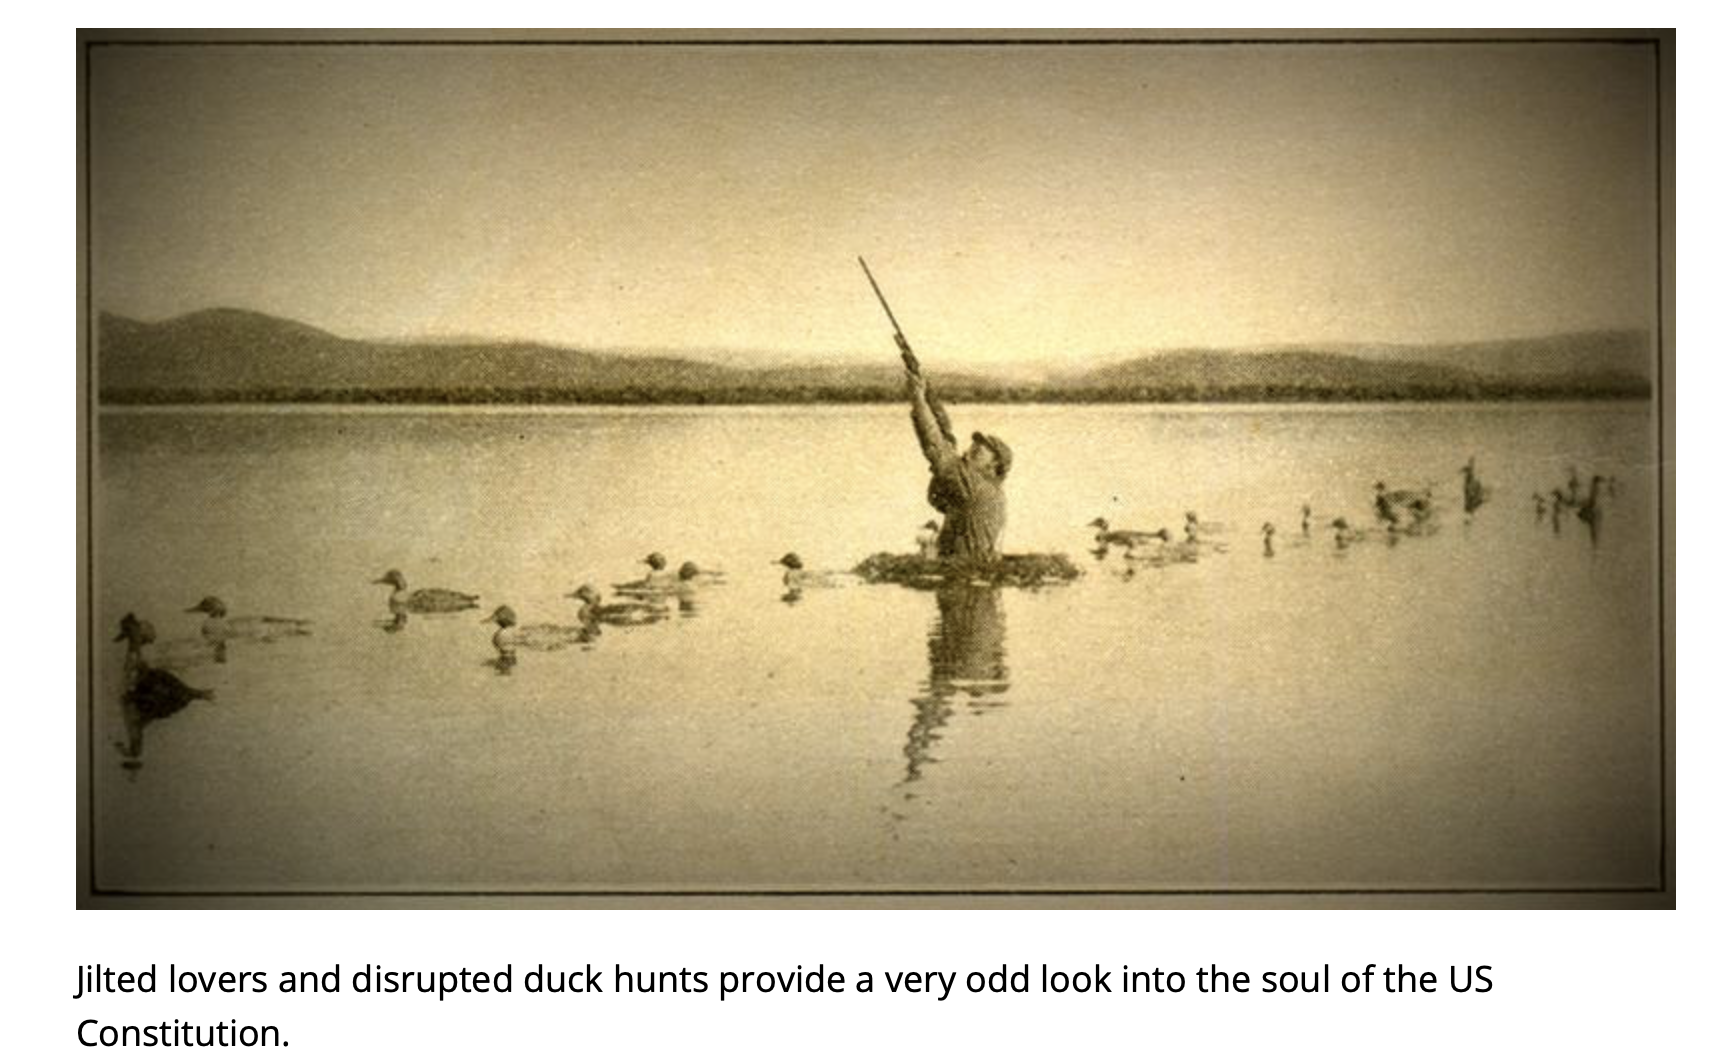 Screenshot from a page on WNYC of a solitary duck hunter, submersed in a lake and surrounded by ducks but shooting upward.